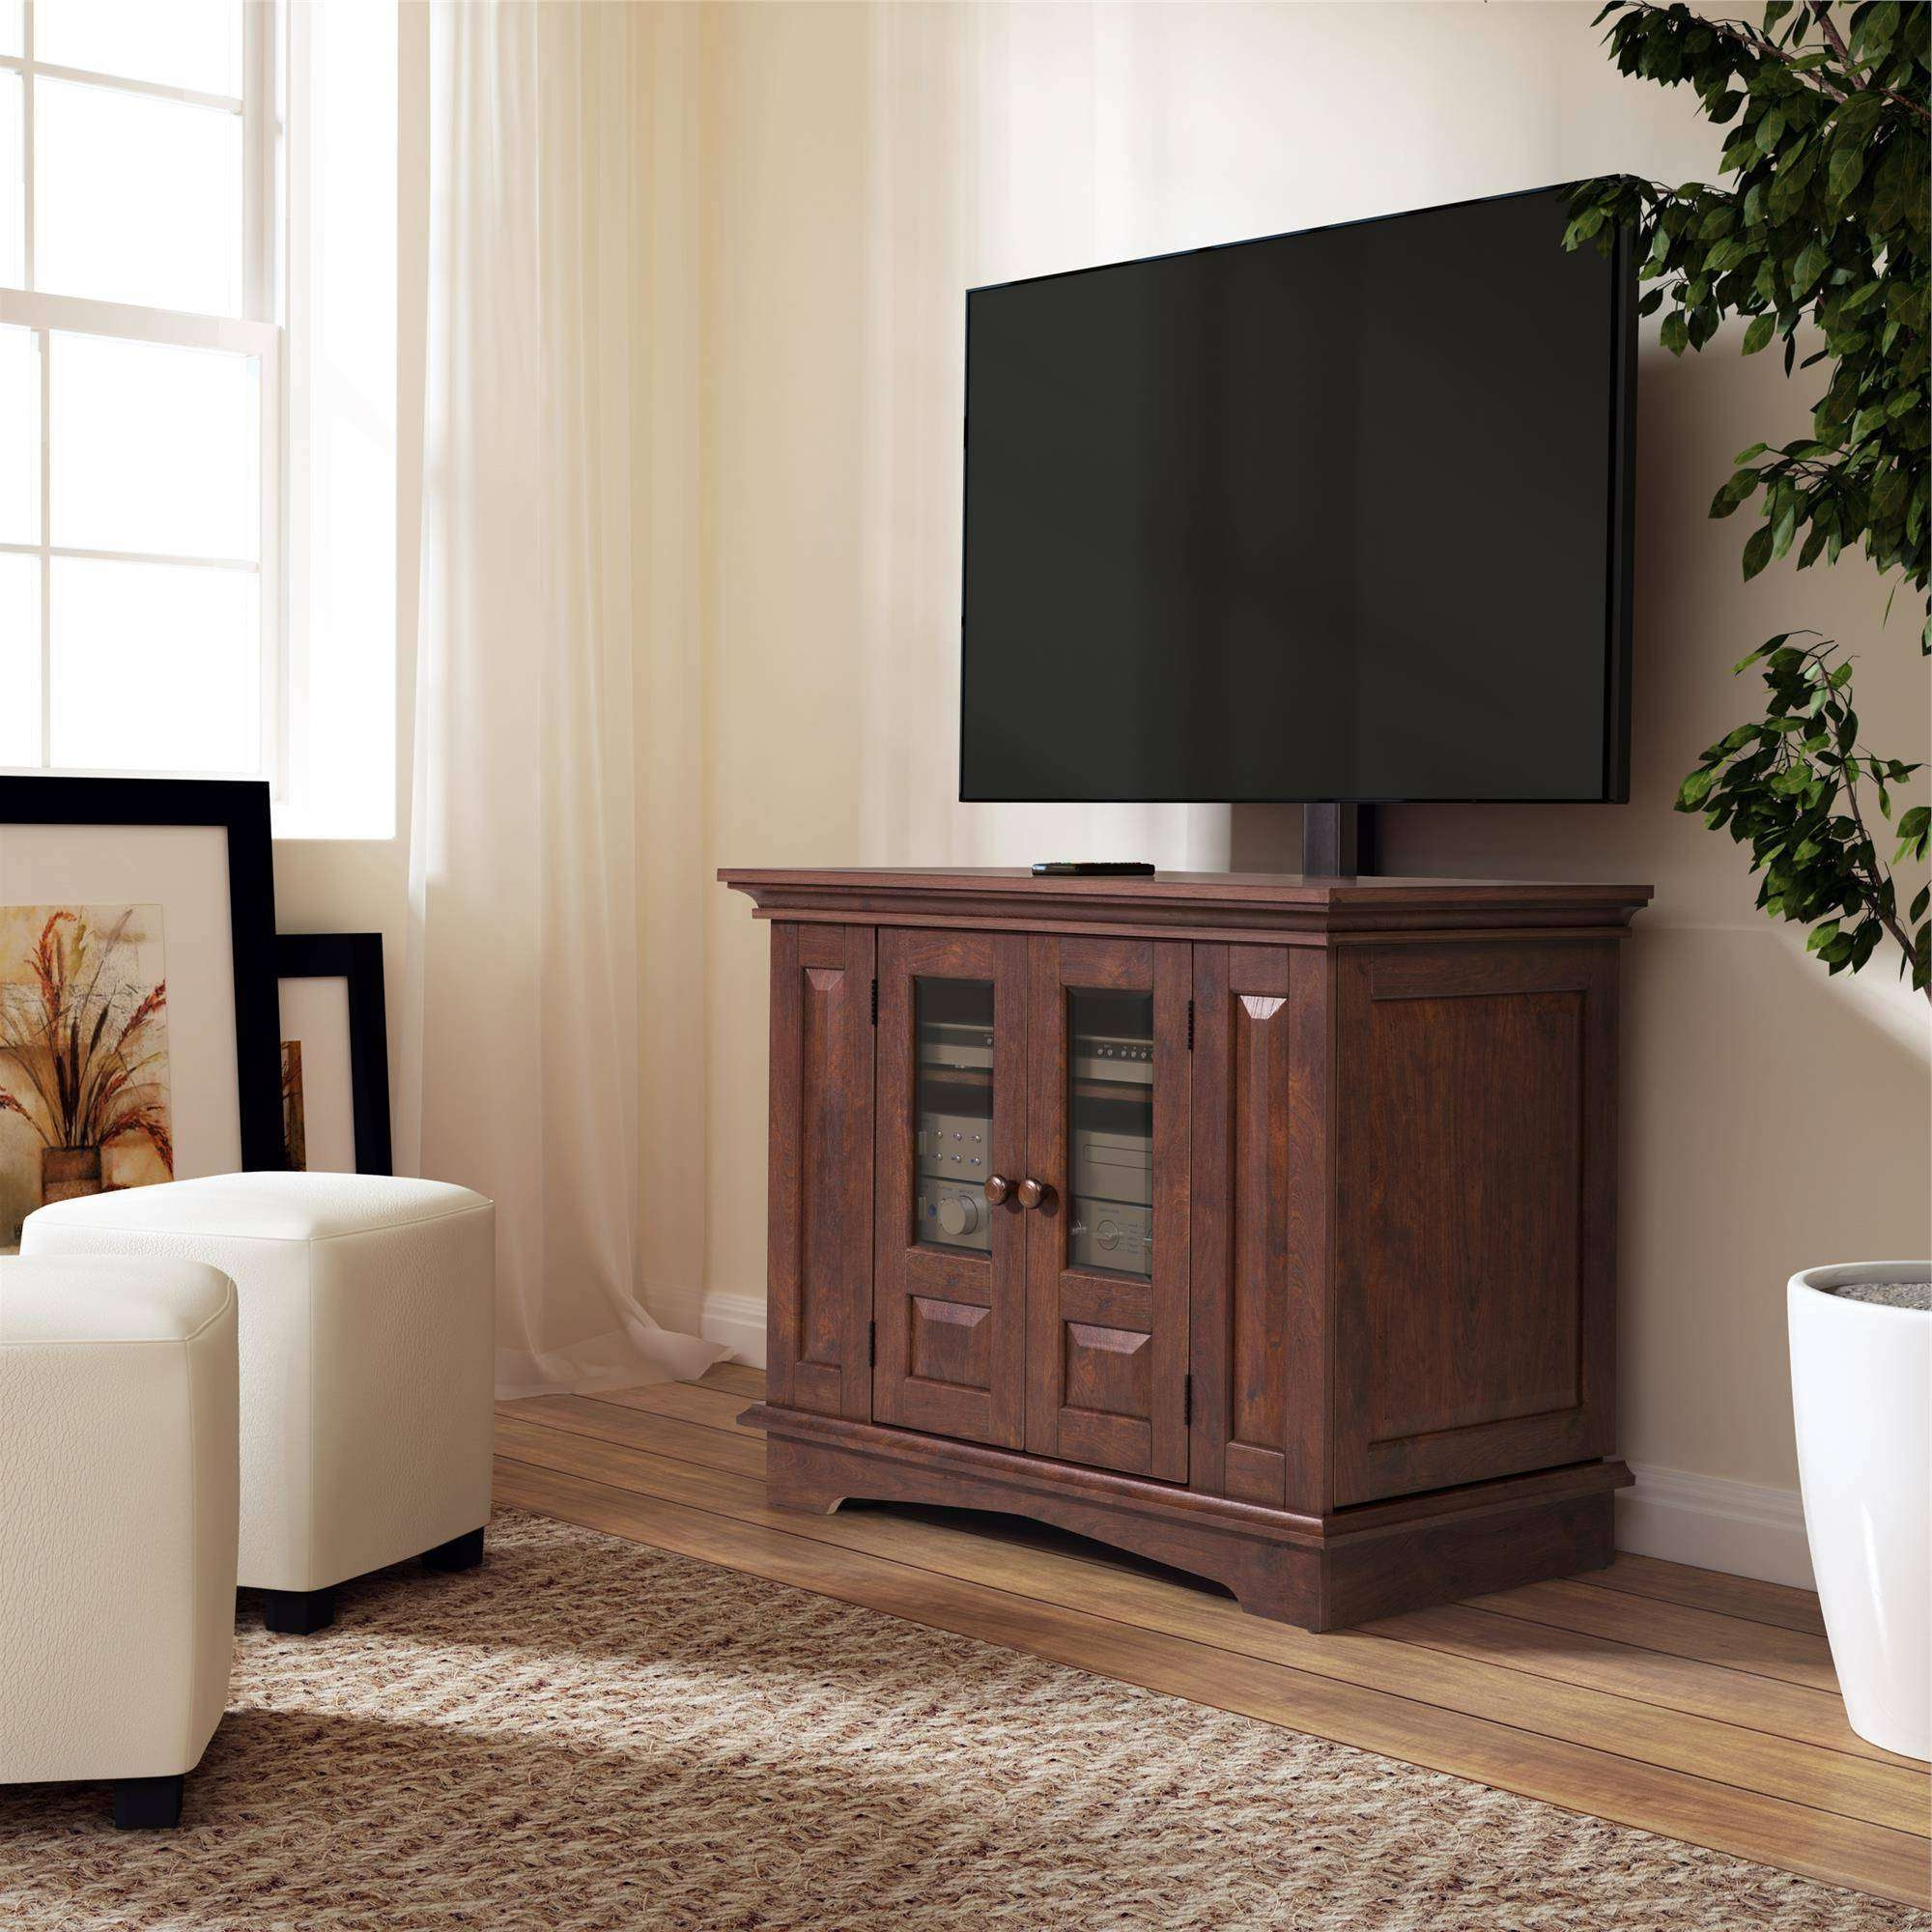 Willow Mountain Cherry Tv Stand With Mount, For Tvs Up To 37 With Wood Tv Stands With Swivel Mount (View 13 of 15)